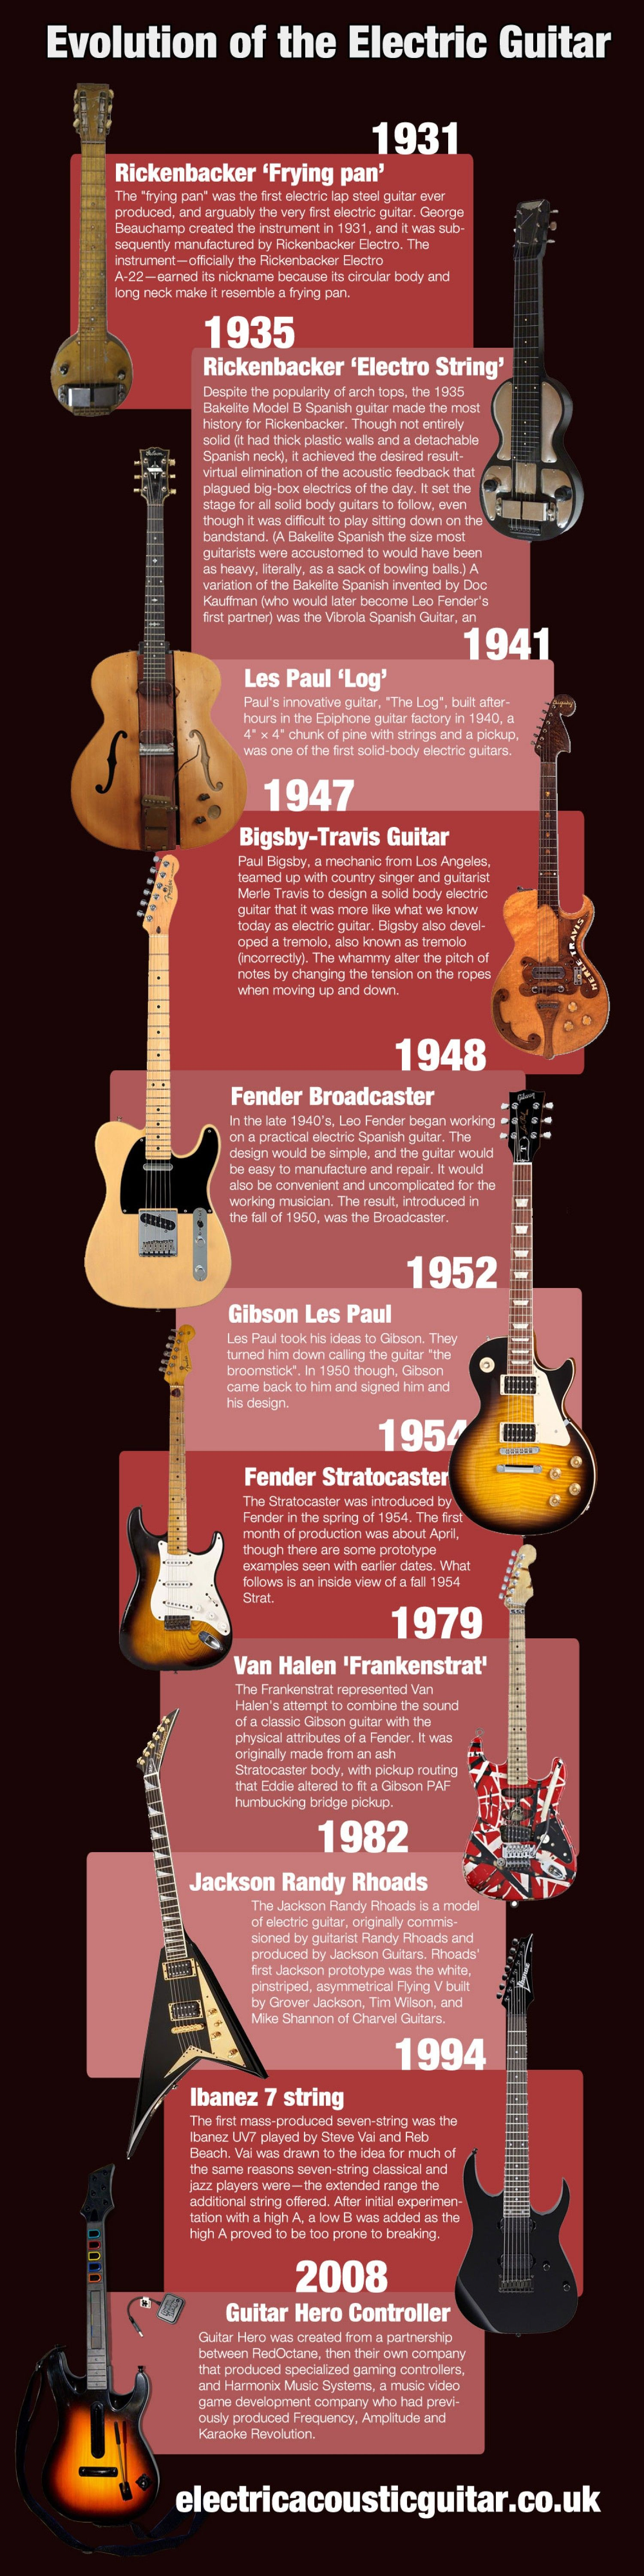 evolution of the electric guitar infographic guitar music guitars guitar music guitar. Black Bedroom Furniture Sets. Home Design Ideas